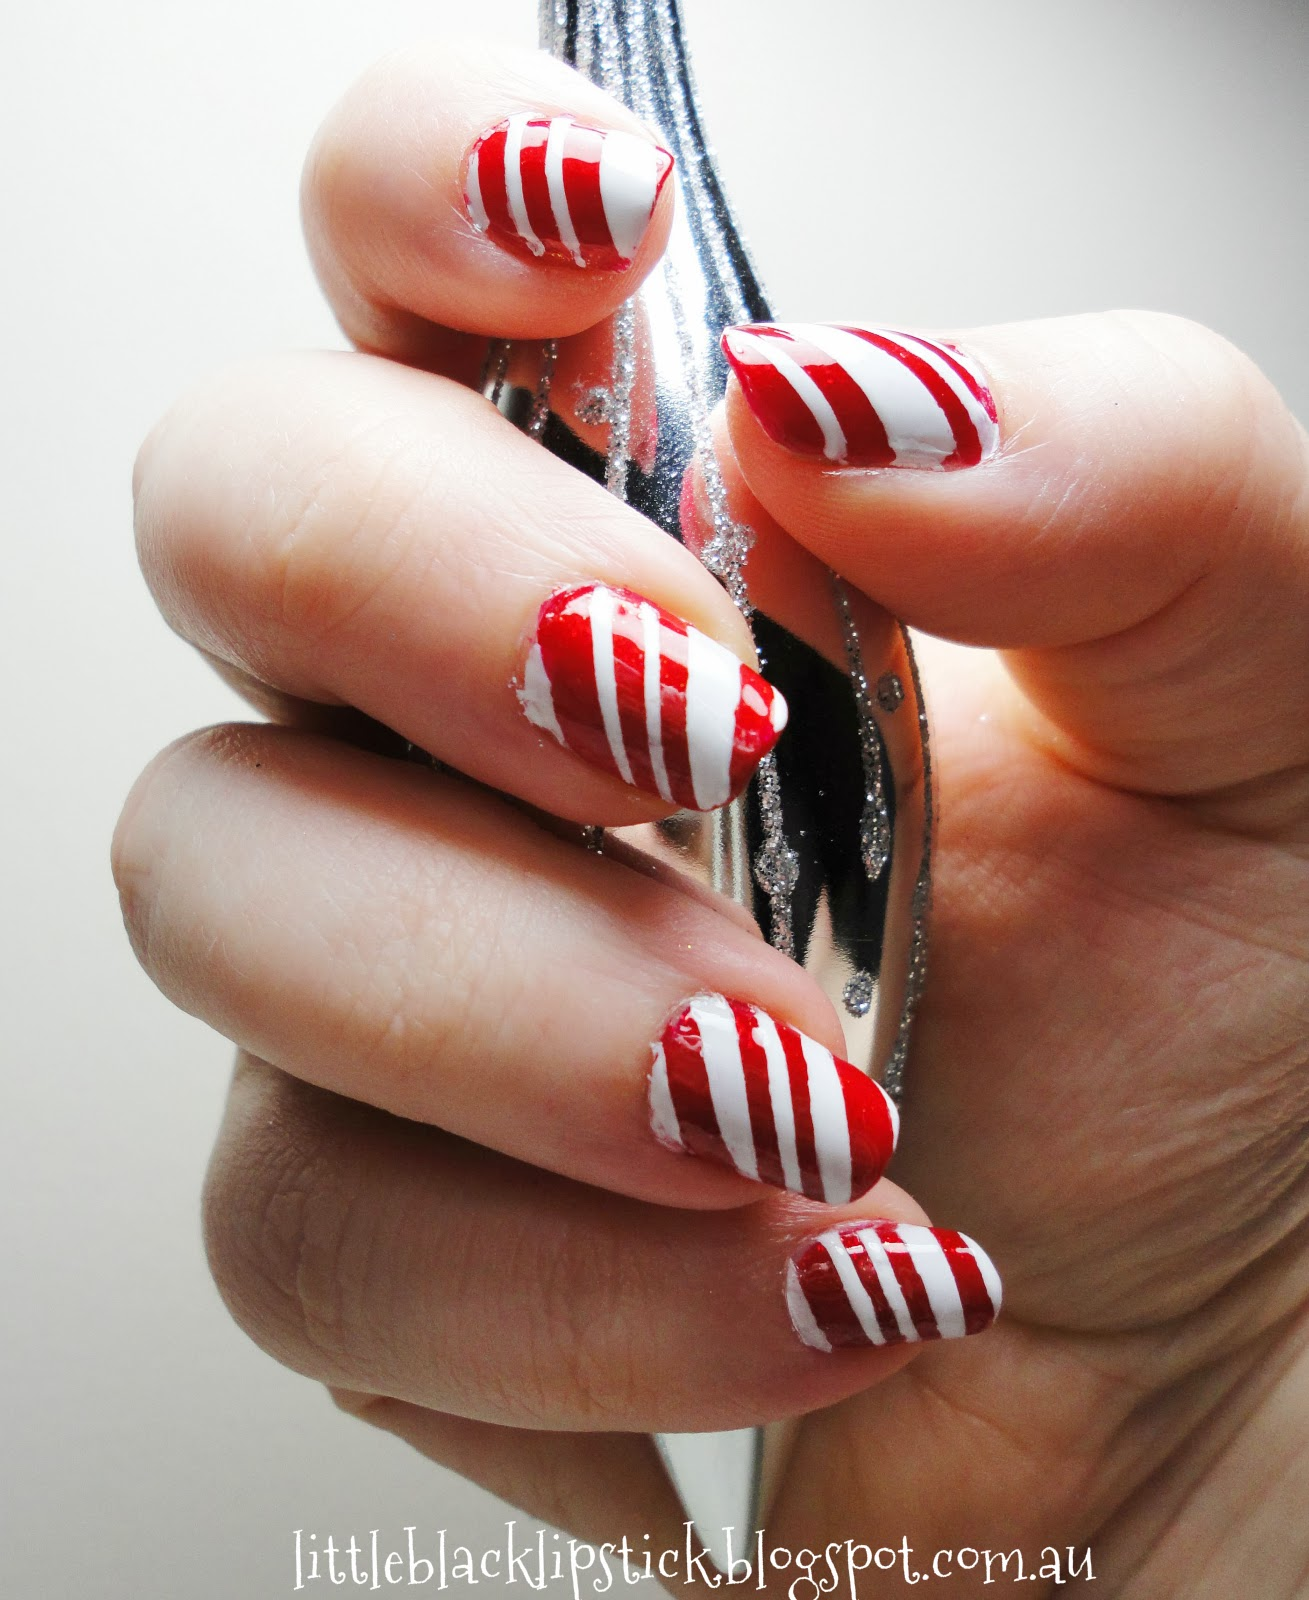 Little Black Lipstick Easy Candy Cane Christmas Nail Art Tutorial